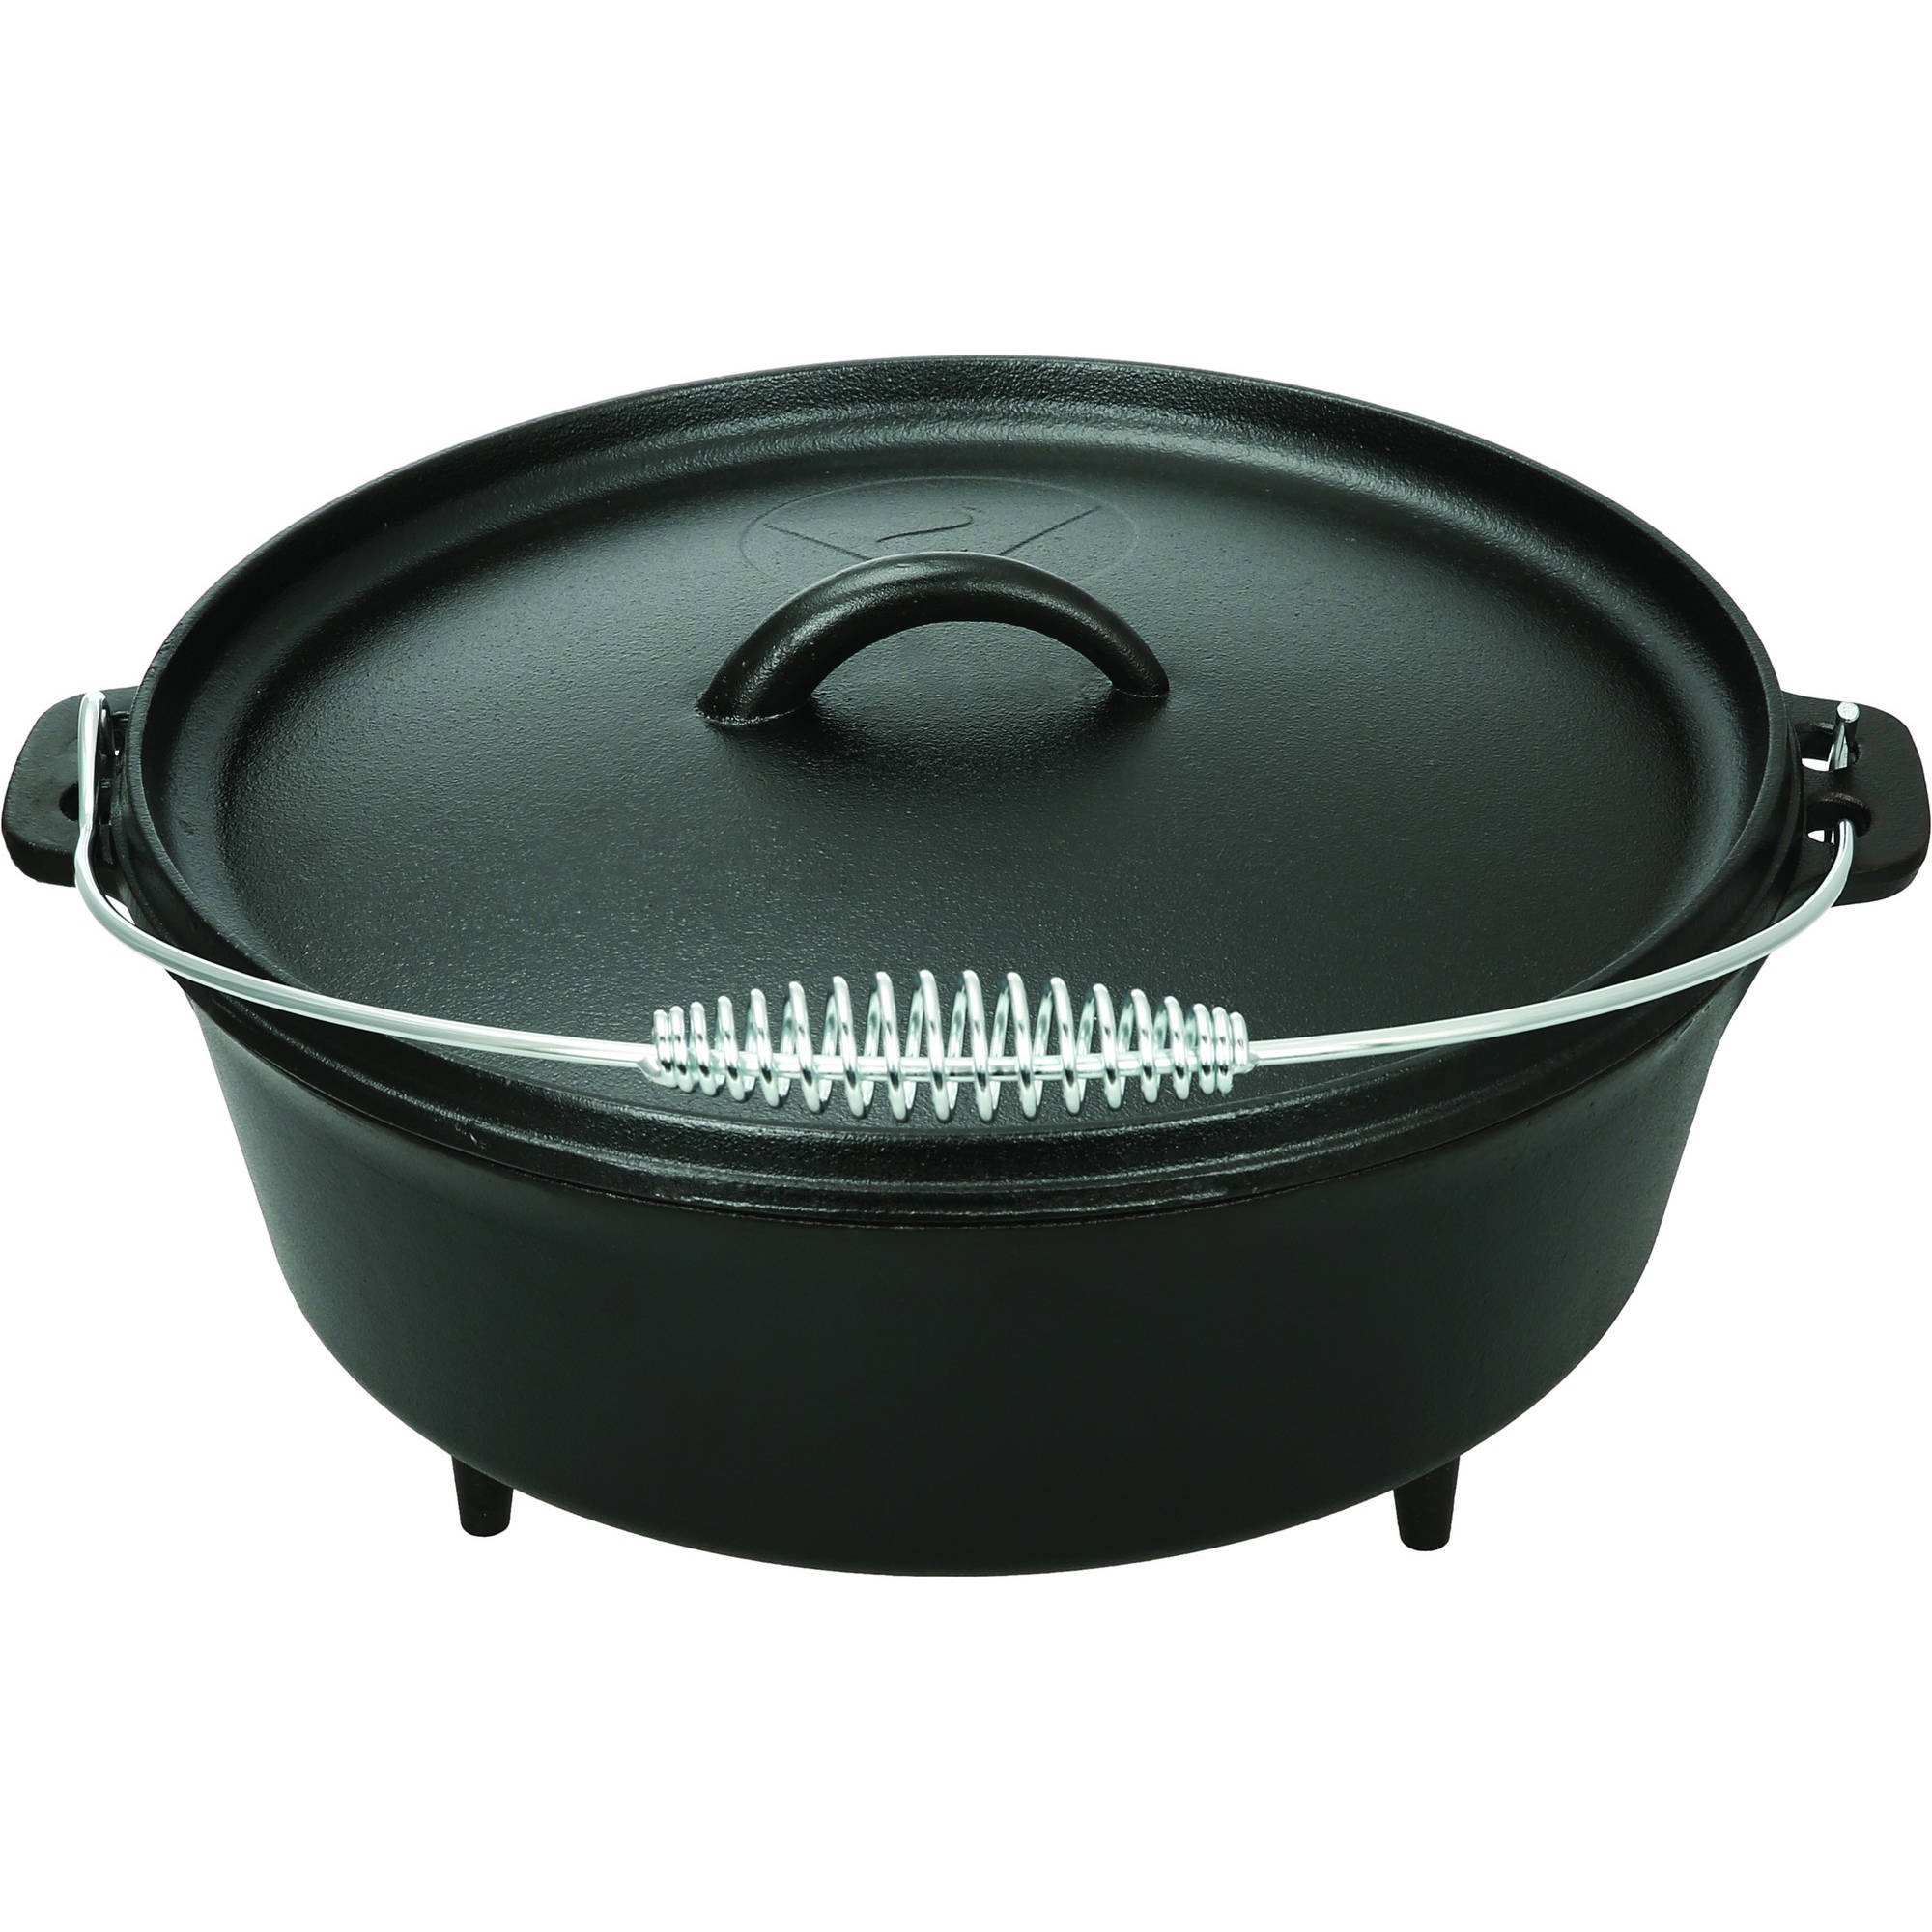 Ozark Trail 5 quart Dutch Oven with Lid, Pre-Seasoned